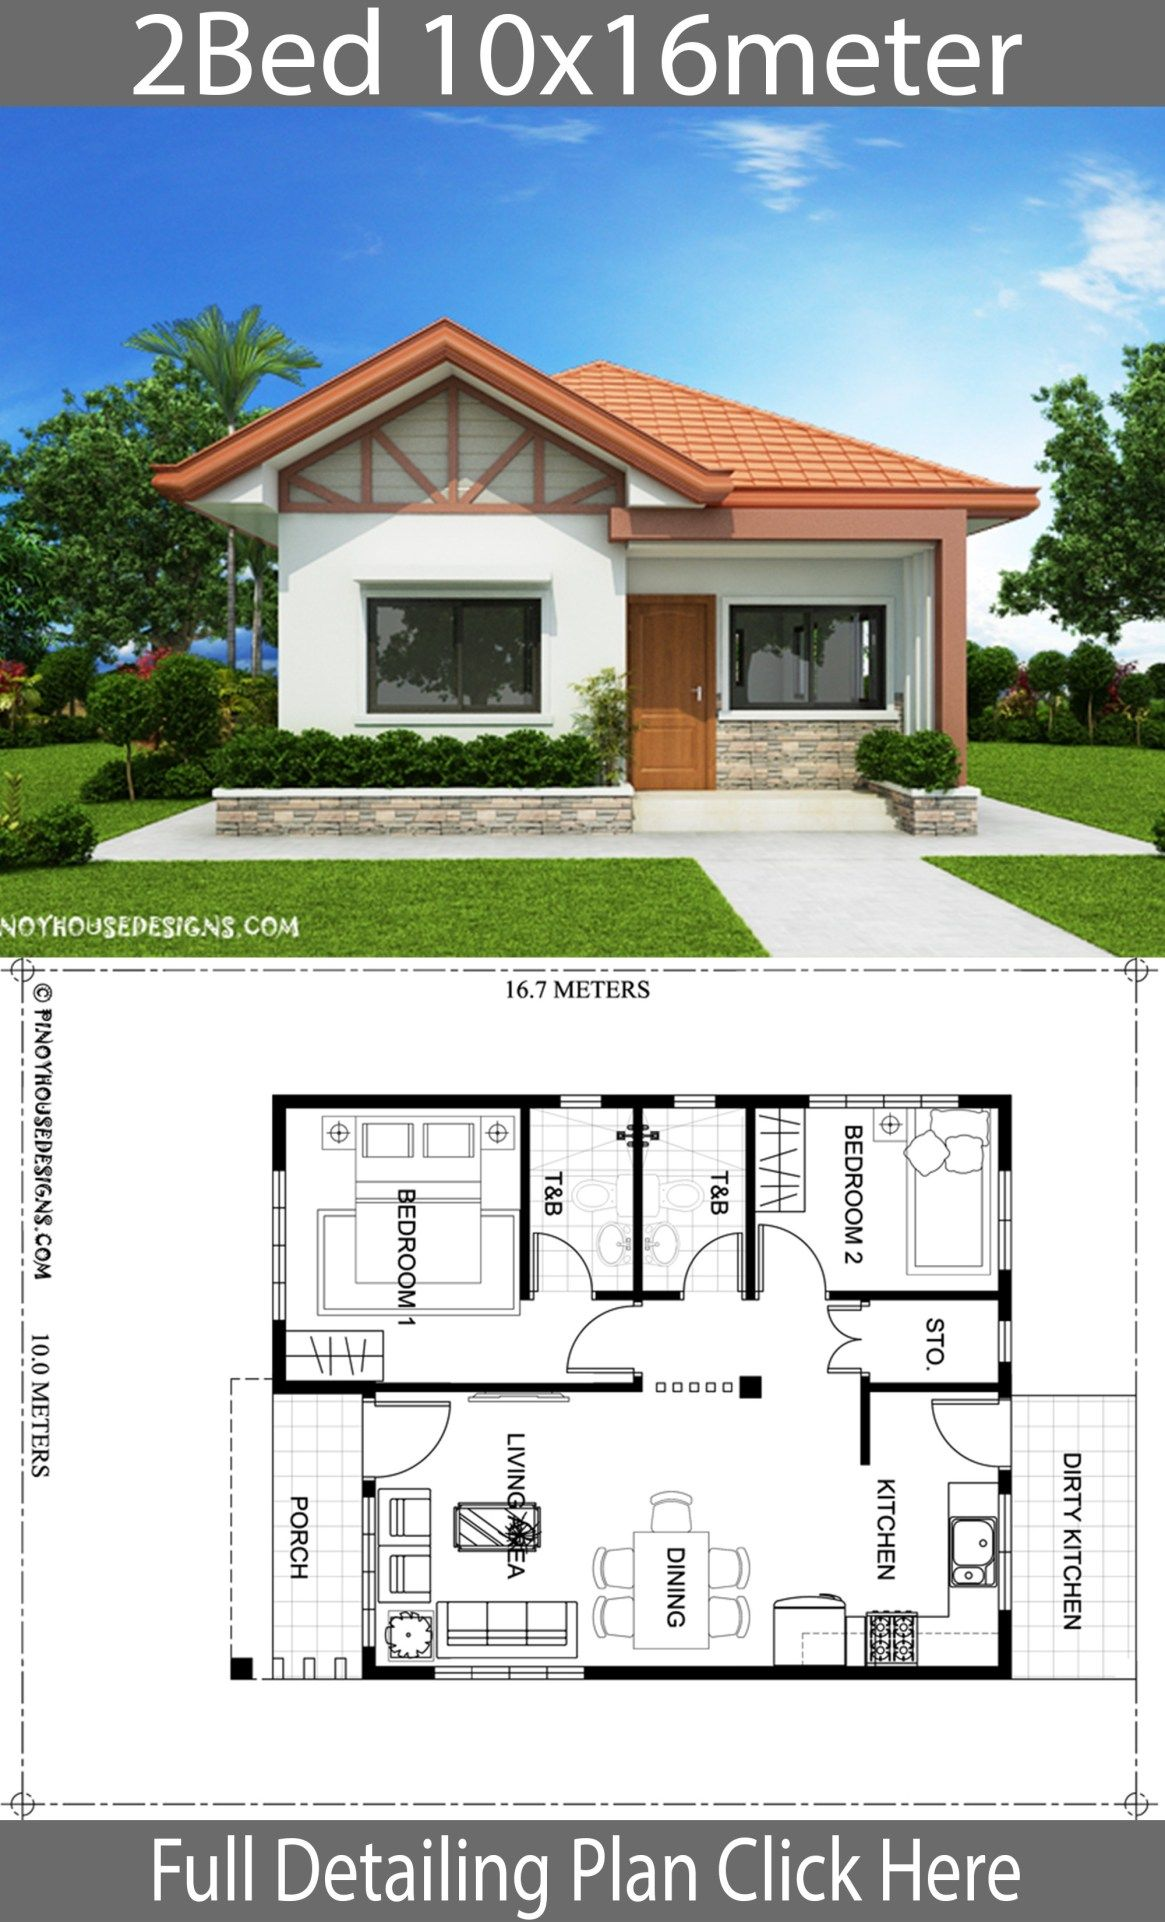 Home design plan 11x11m with 11 bedrooms - Home Design with